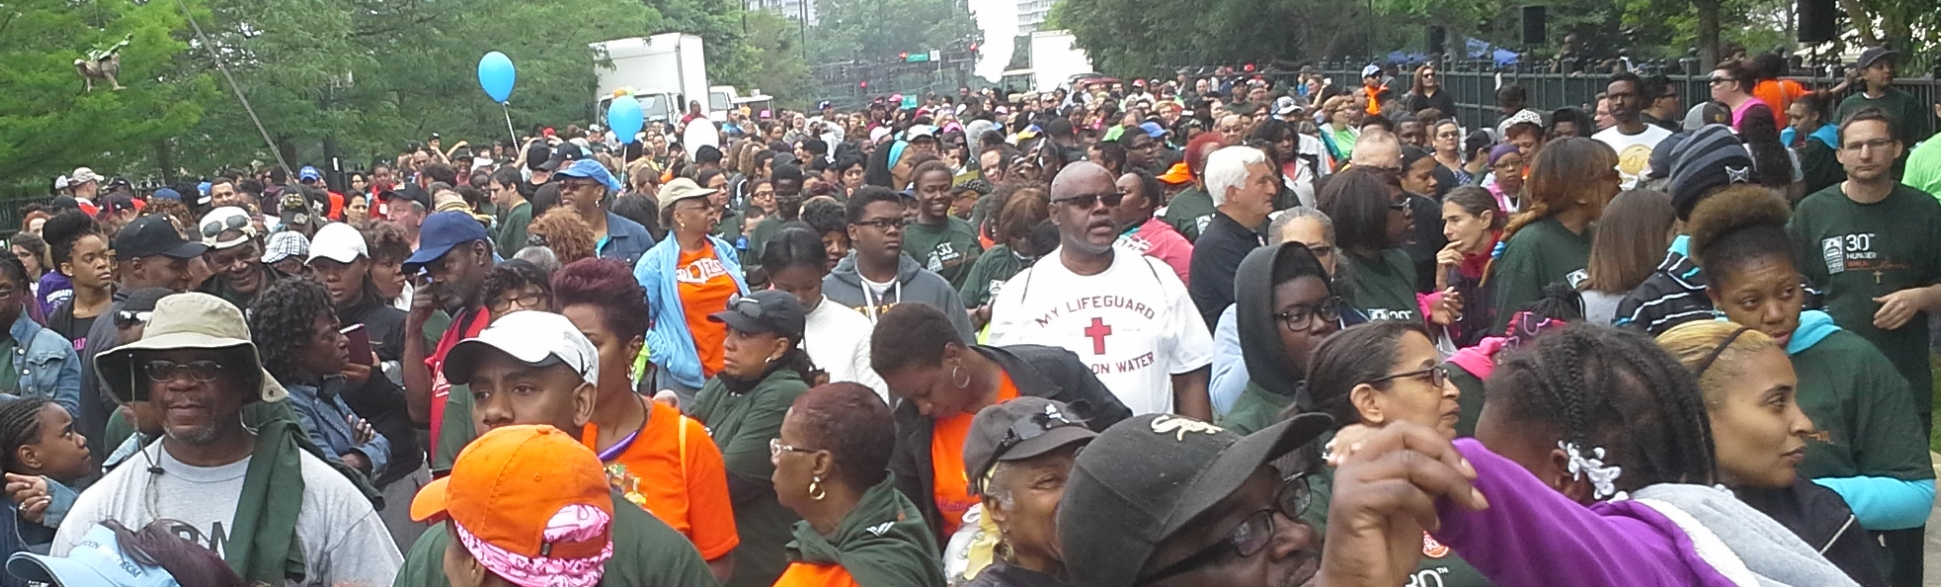 15,000 Participants Attended the Hunger Walk